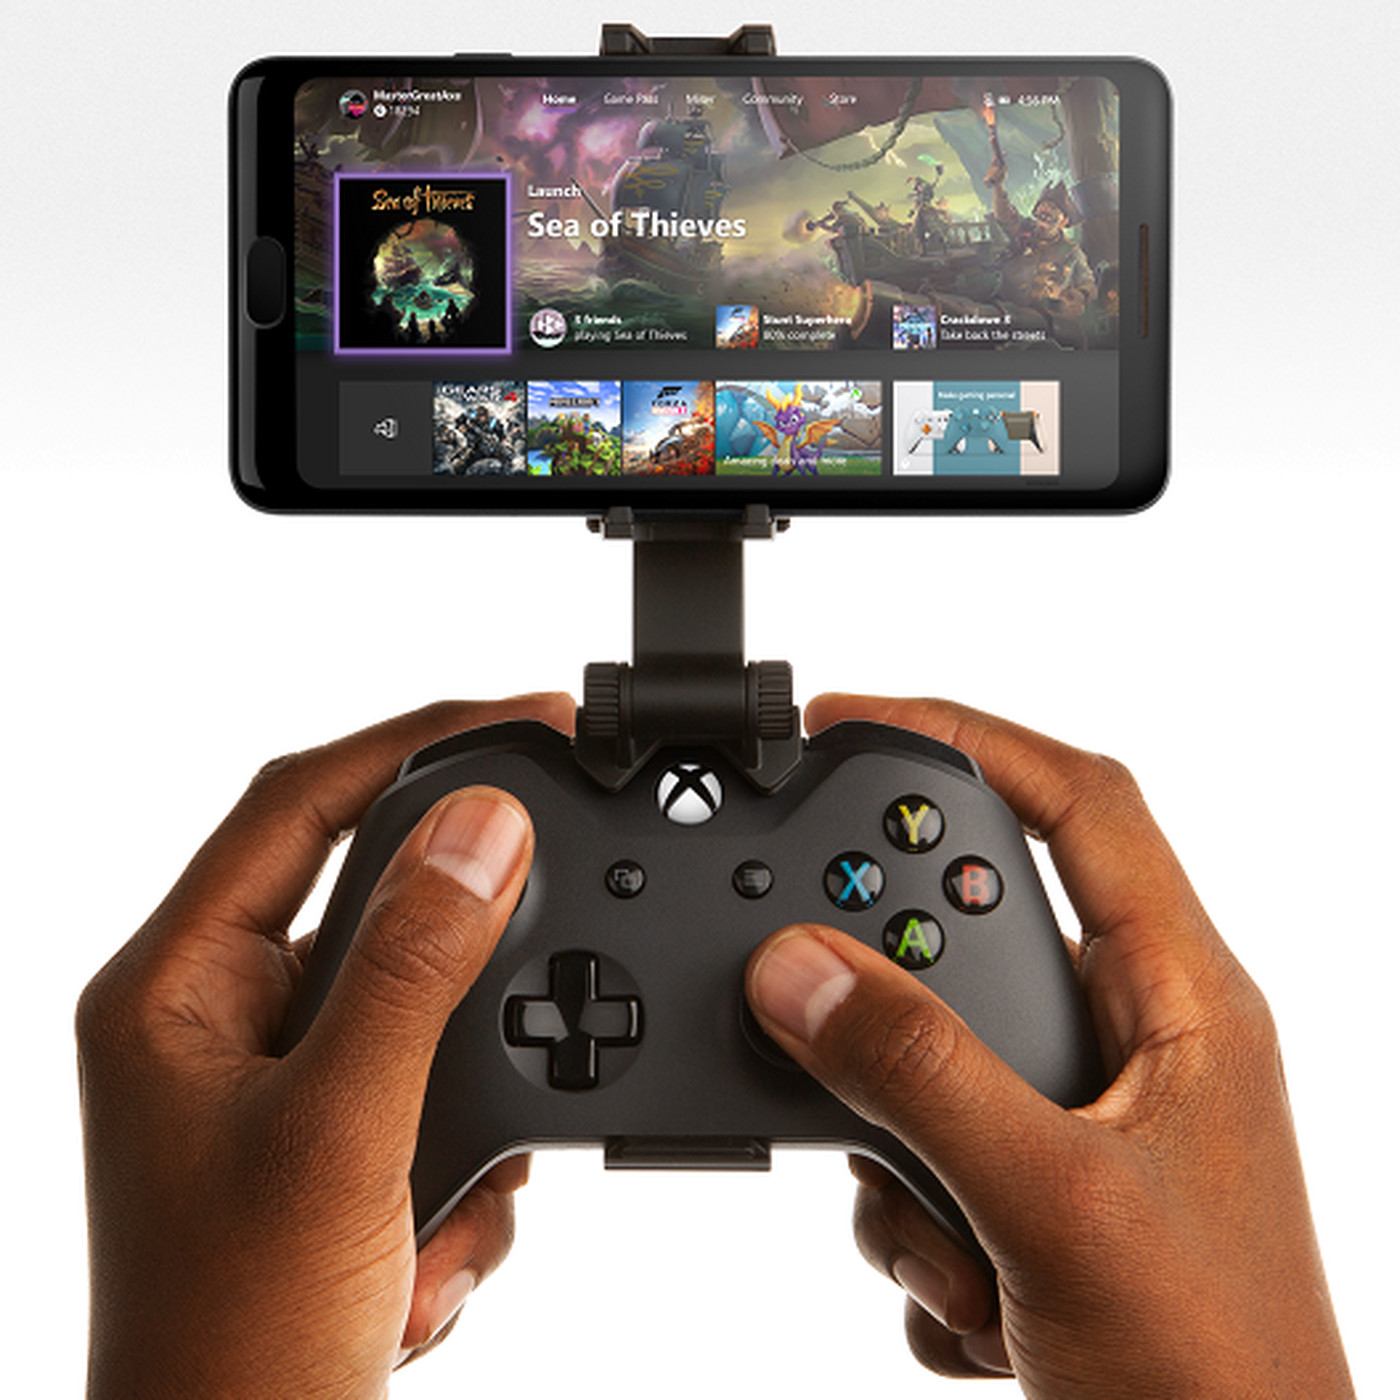 Xbox One Testers Can Now Stream Any Game To An Android Phone The Verge